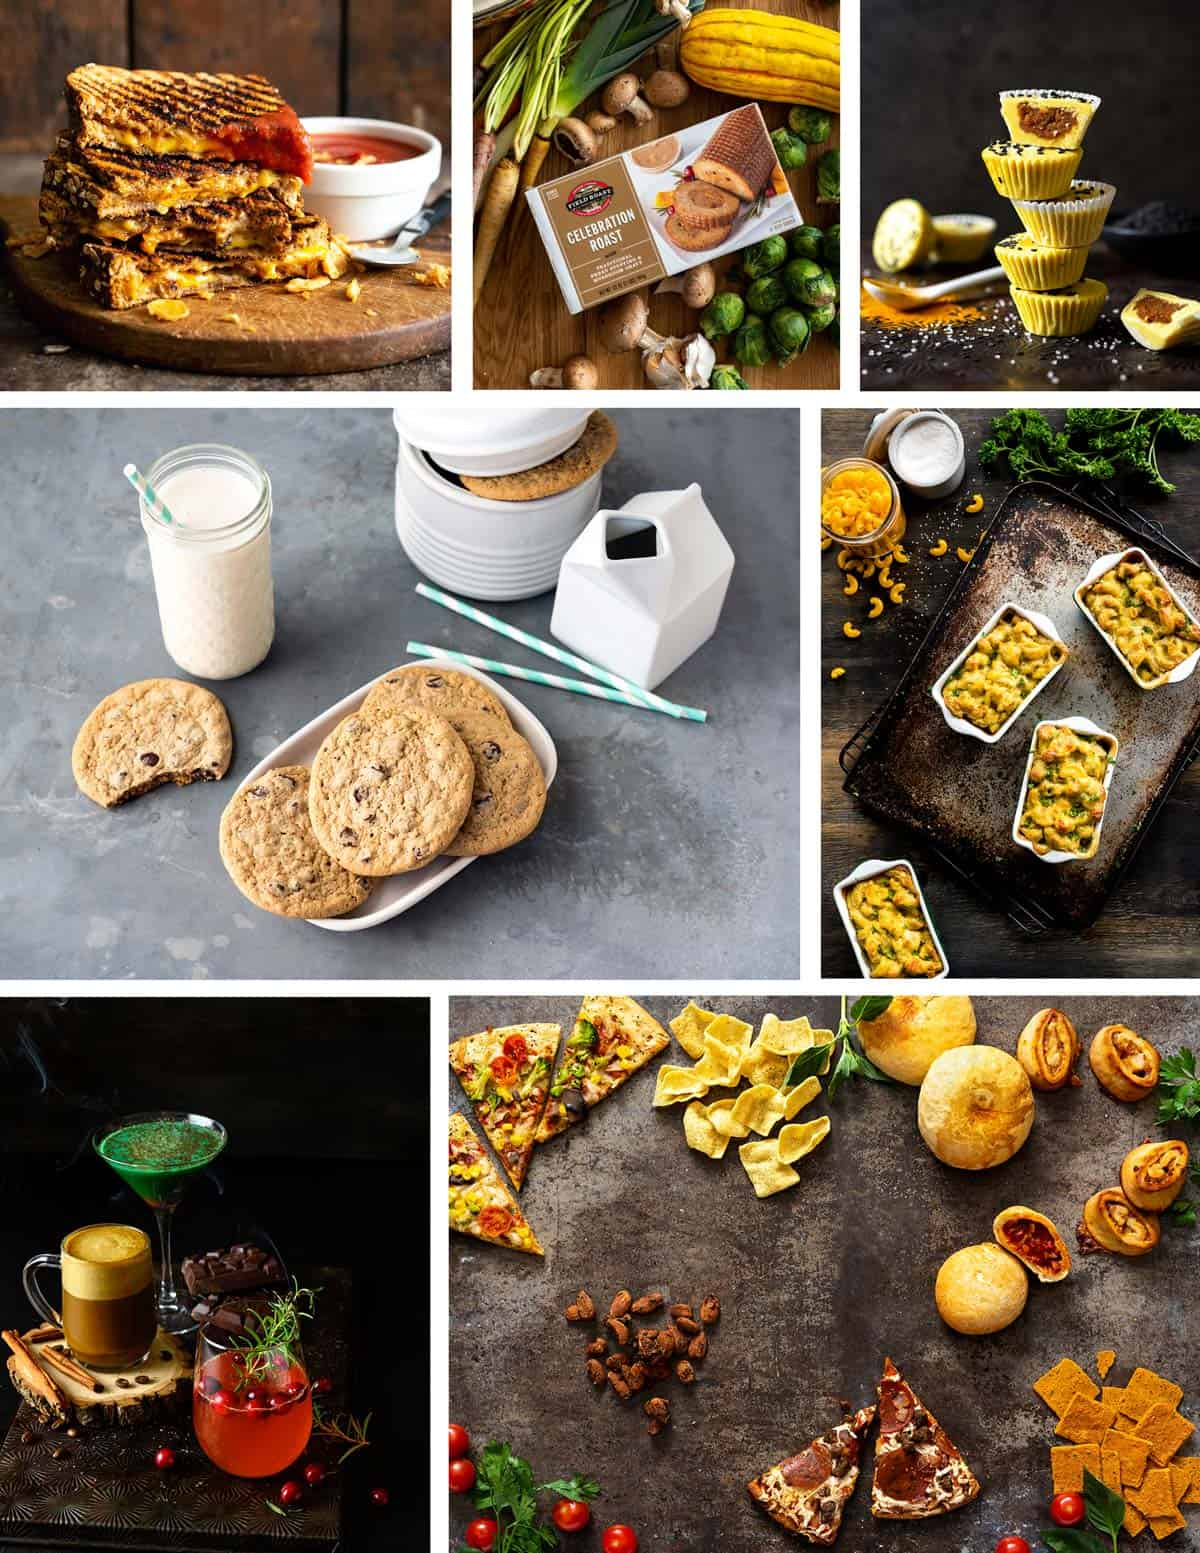 Plant-based & Vegan Food Photography and Styling done by Jackie Sobon of Vegan Yack Attack